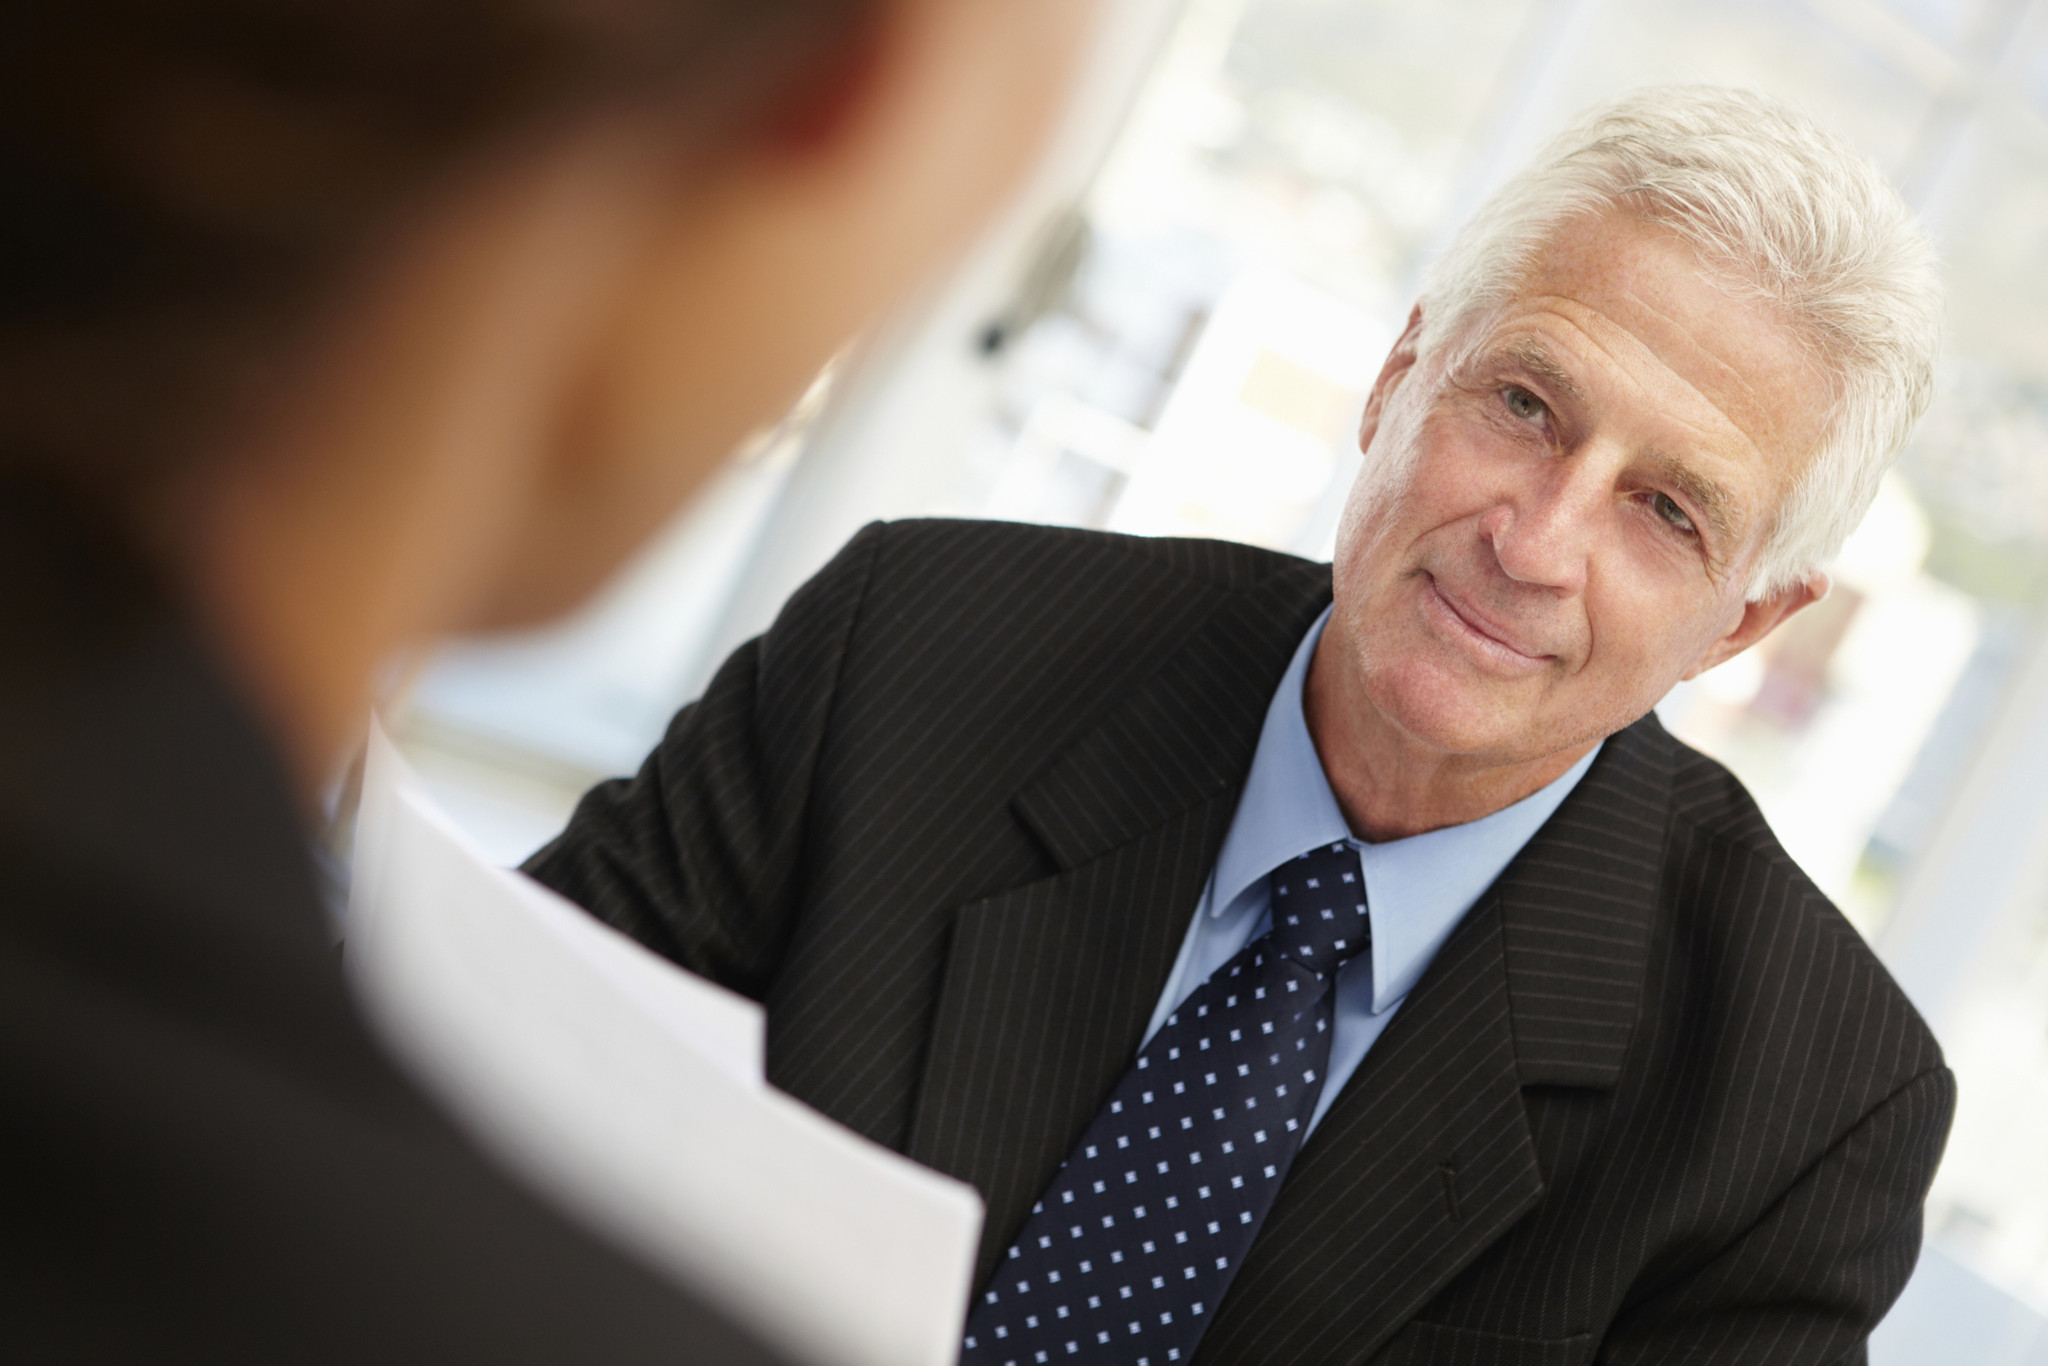 interview with an old person